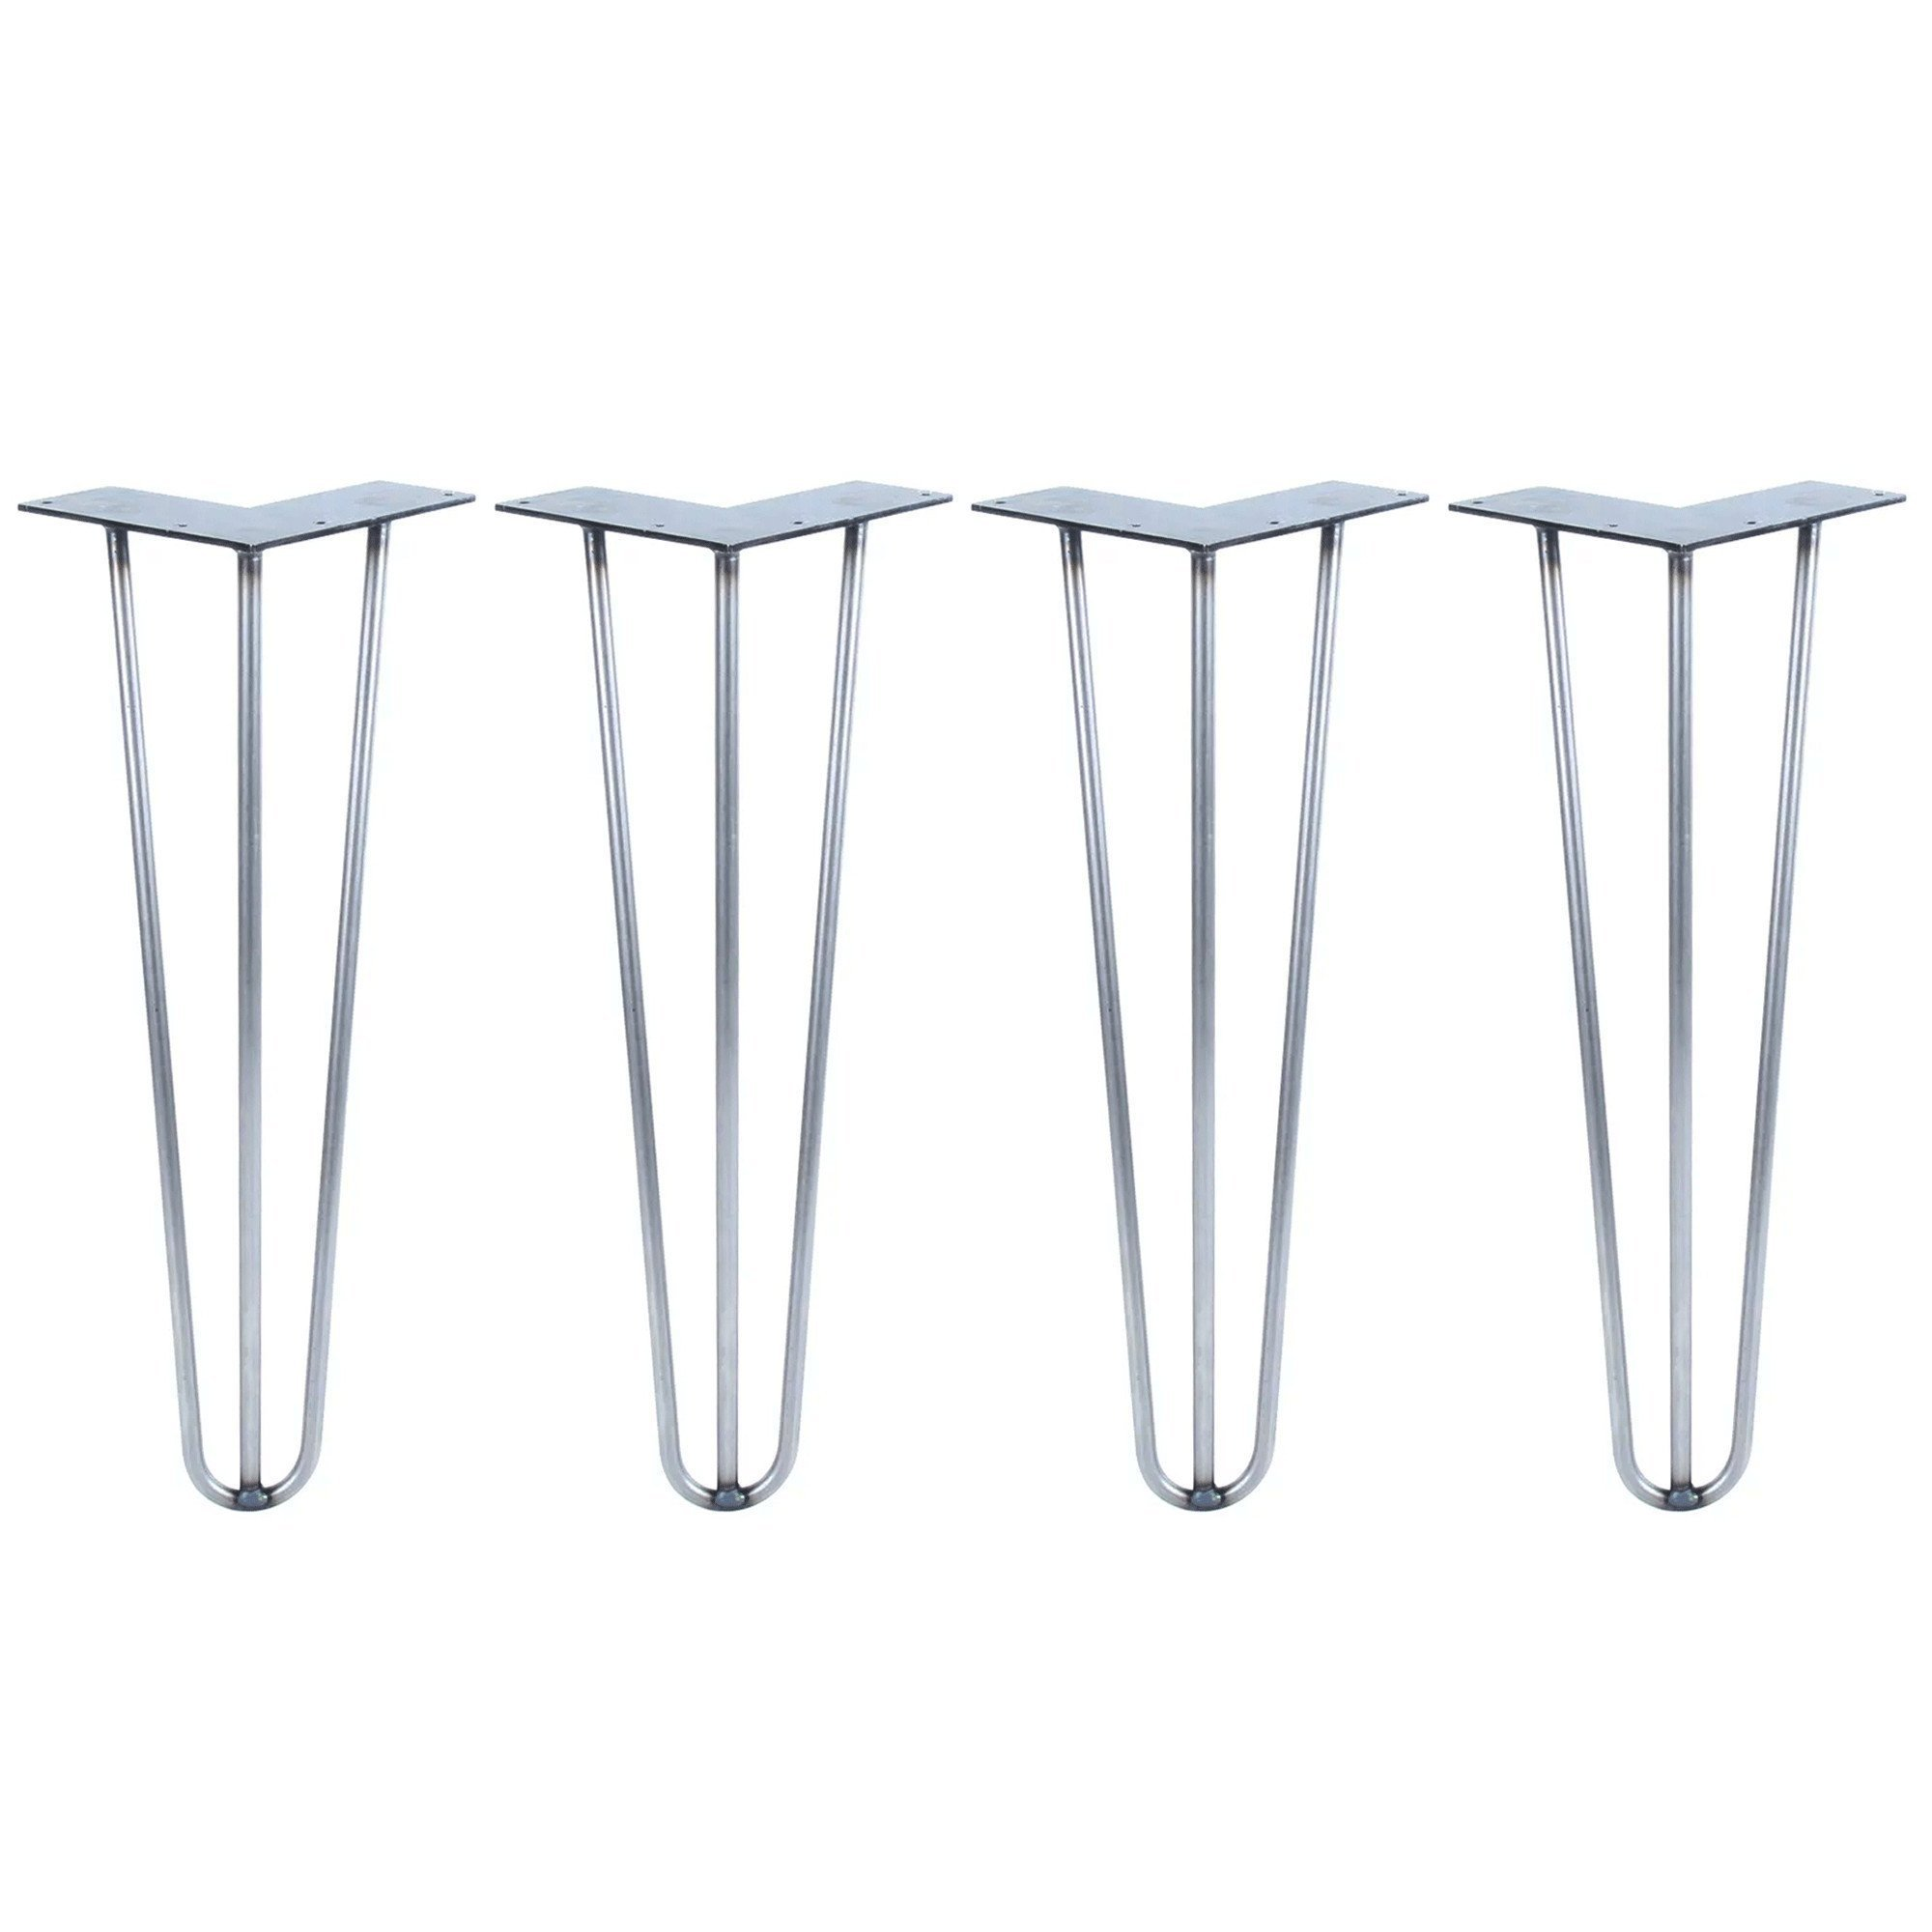 Hairpin Legs Set of 4 - Cold Rolled Steel - Raw and Color Available - Made in The USA (24'' Tall, 1/2'' Diameter - Raw Steel- Shipped as Set of 4 Legs) by DIY Hairpin Legs